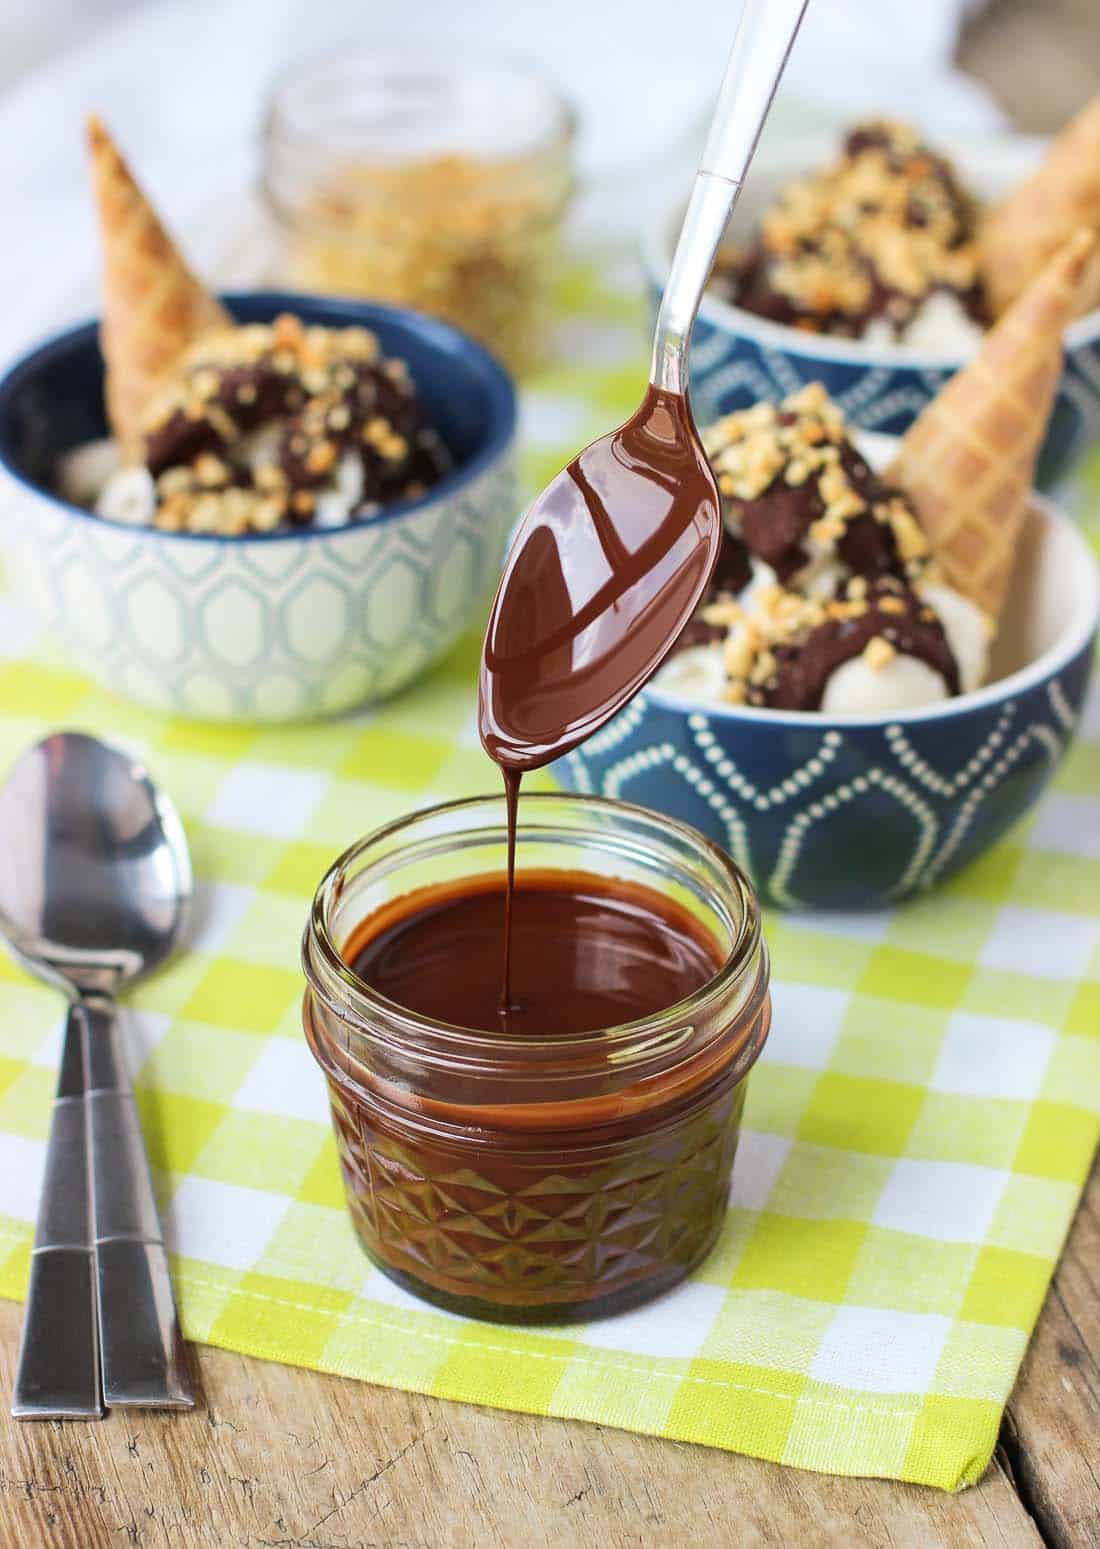 A spoon lifted out of a glass jar of chocolate magic shell, showing the thin mixture drizzling off the spoon